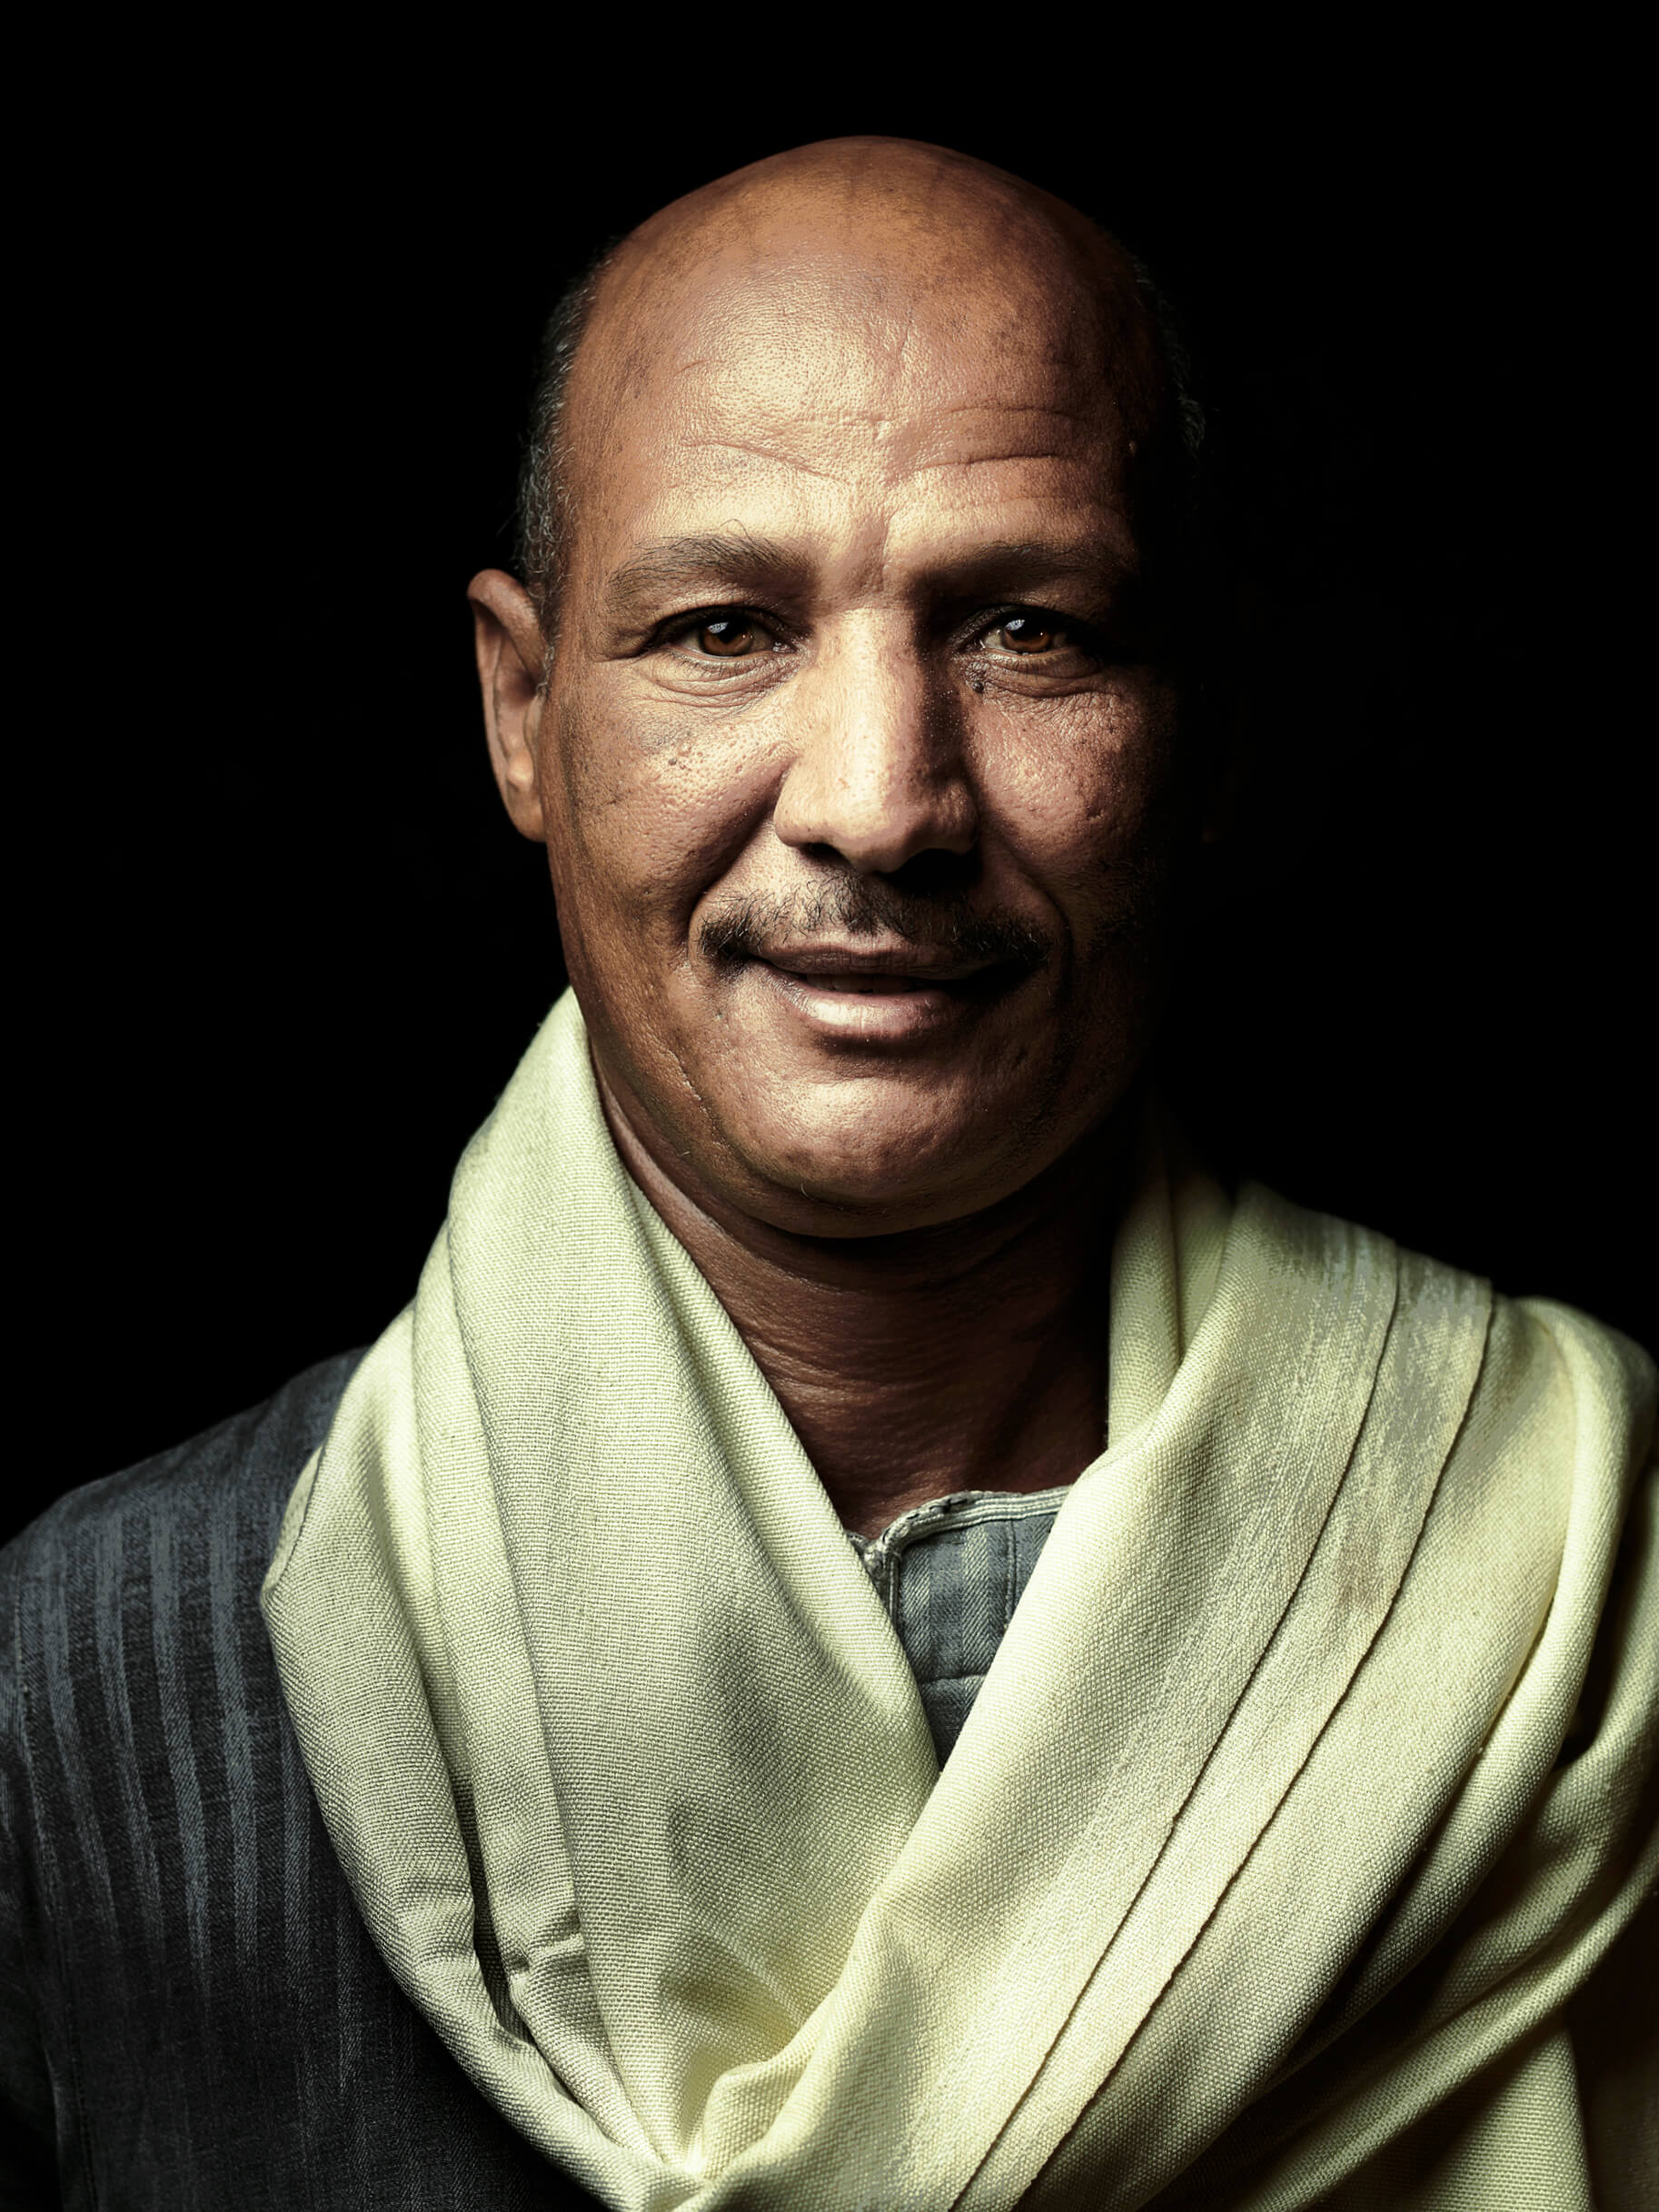 Egypt_People_Portraits_0018